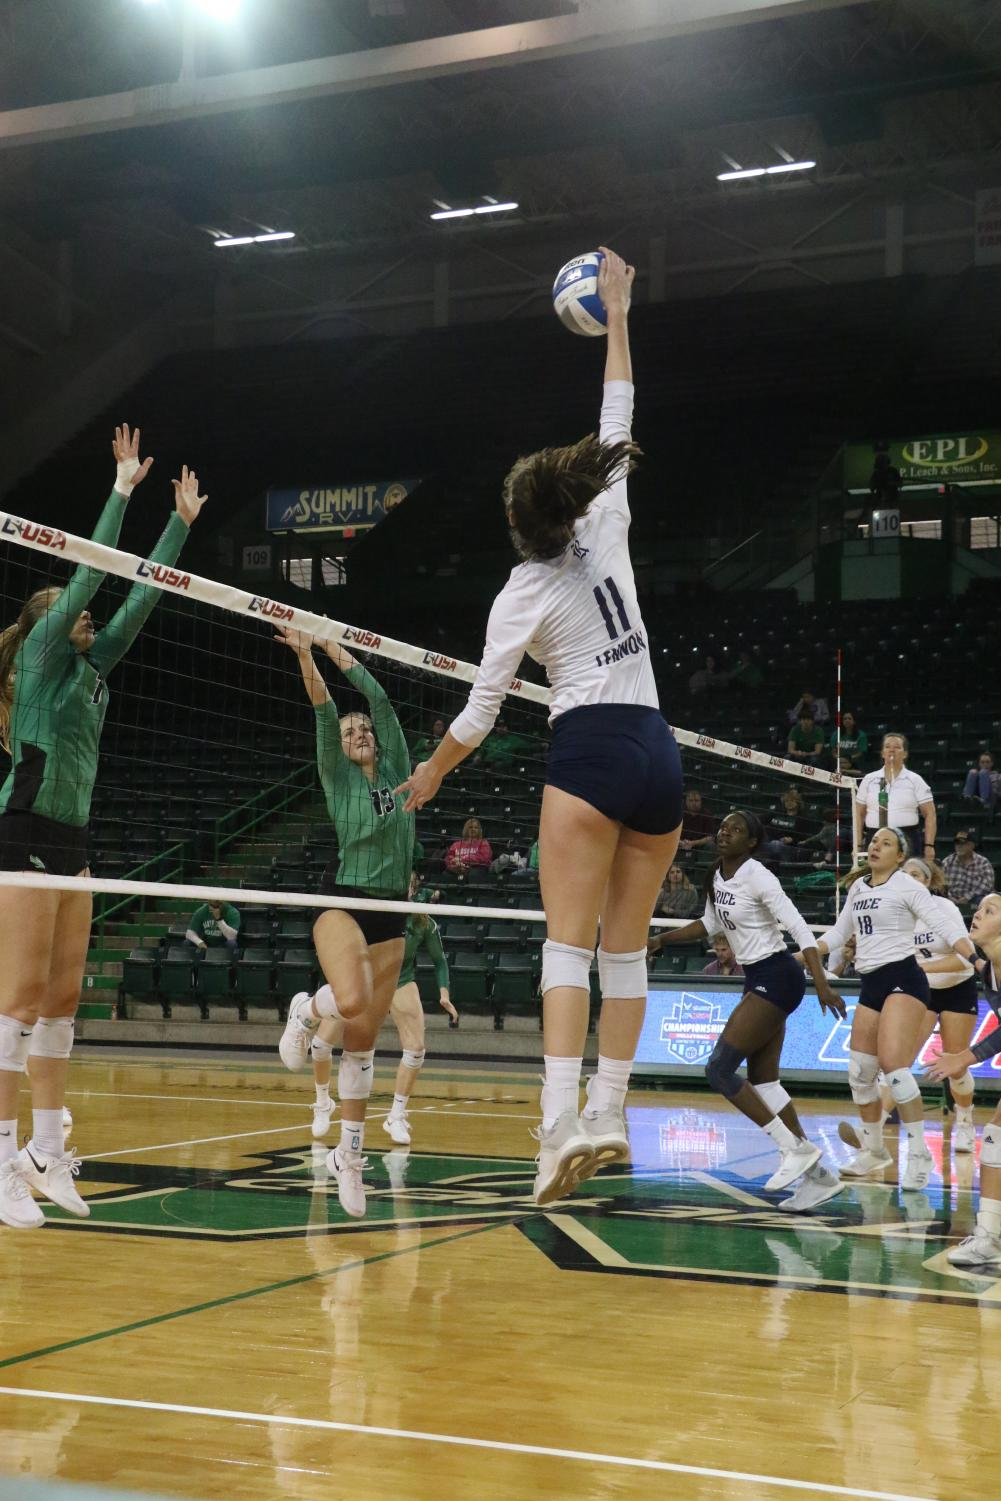 Rice sophomore, Nicole Lennon, attacks above the net for a kill. She has a match-high 22 kills.